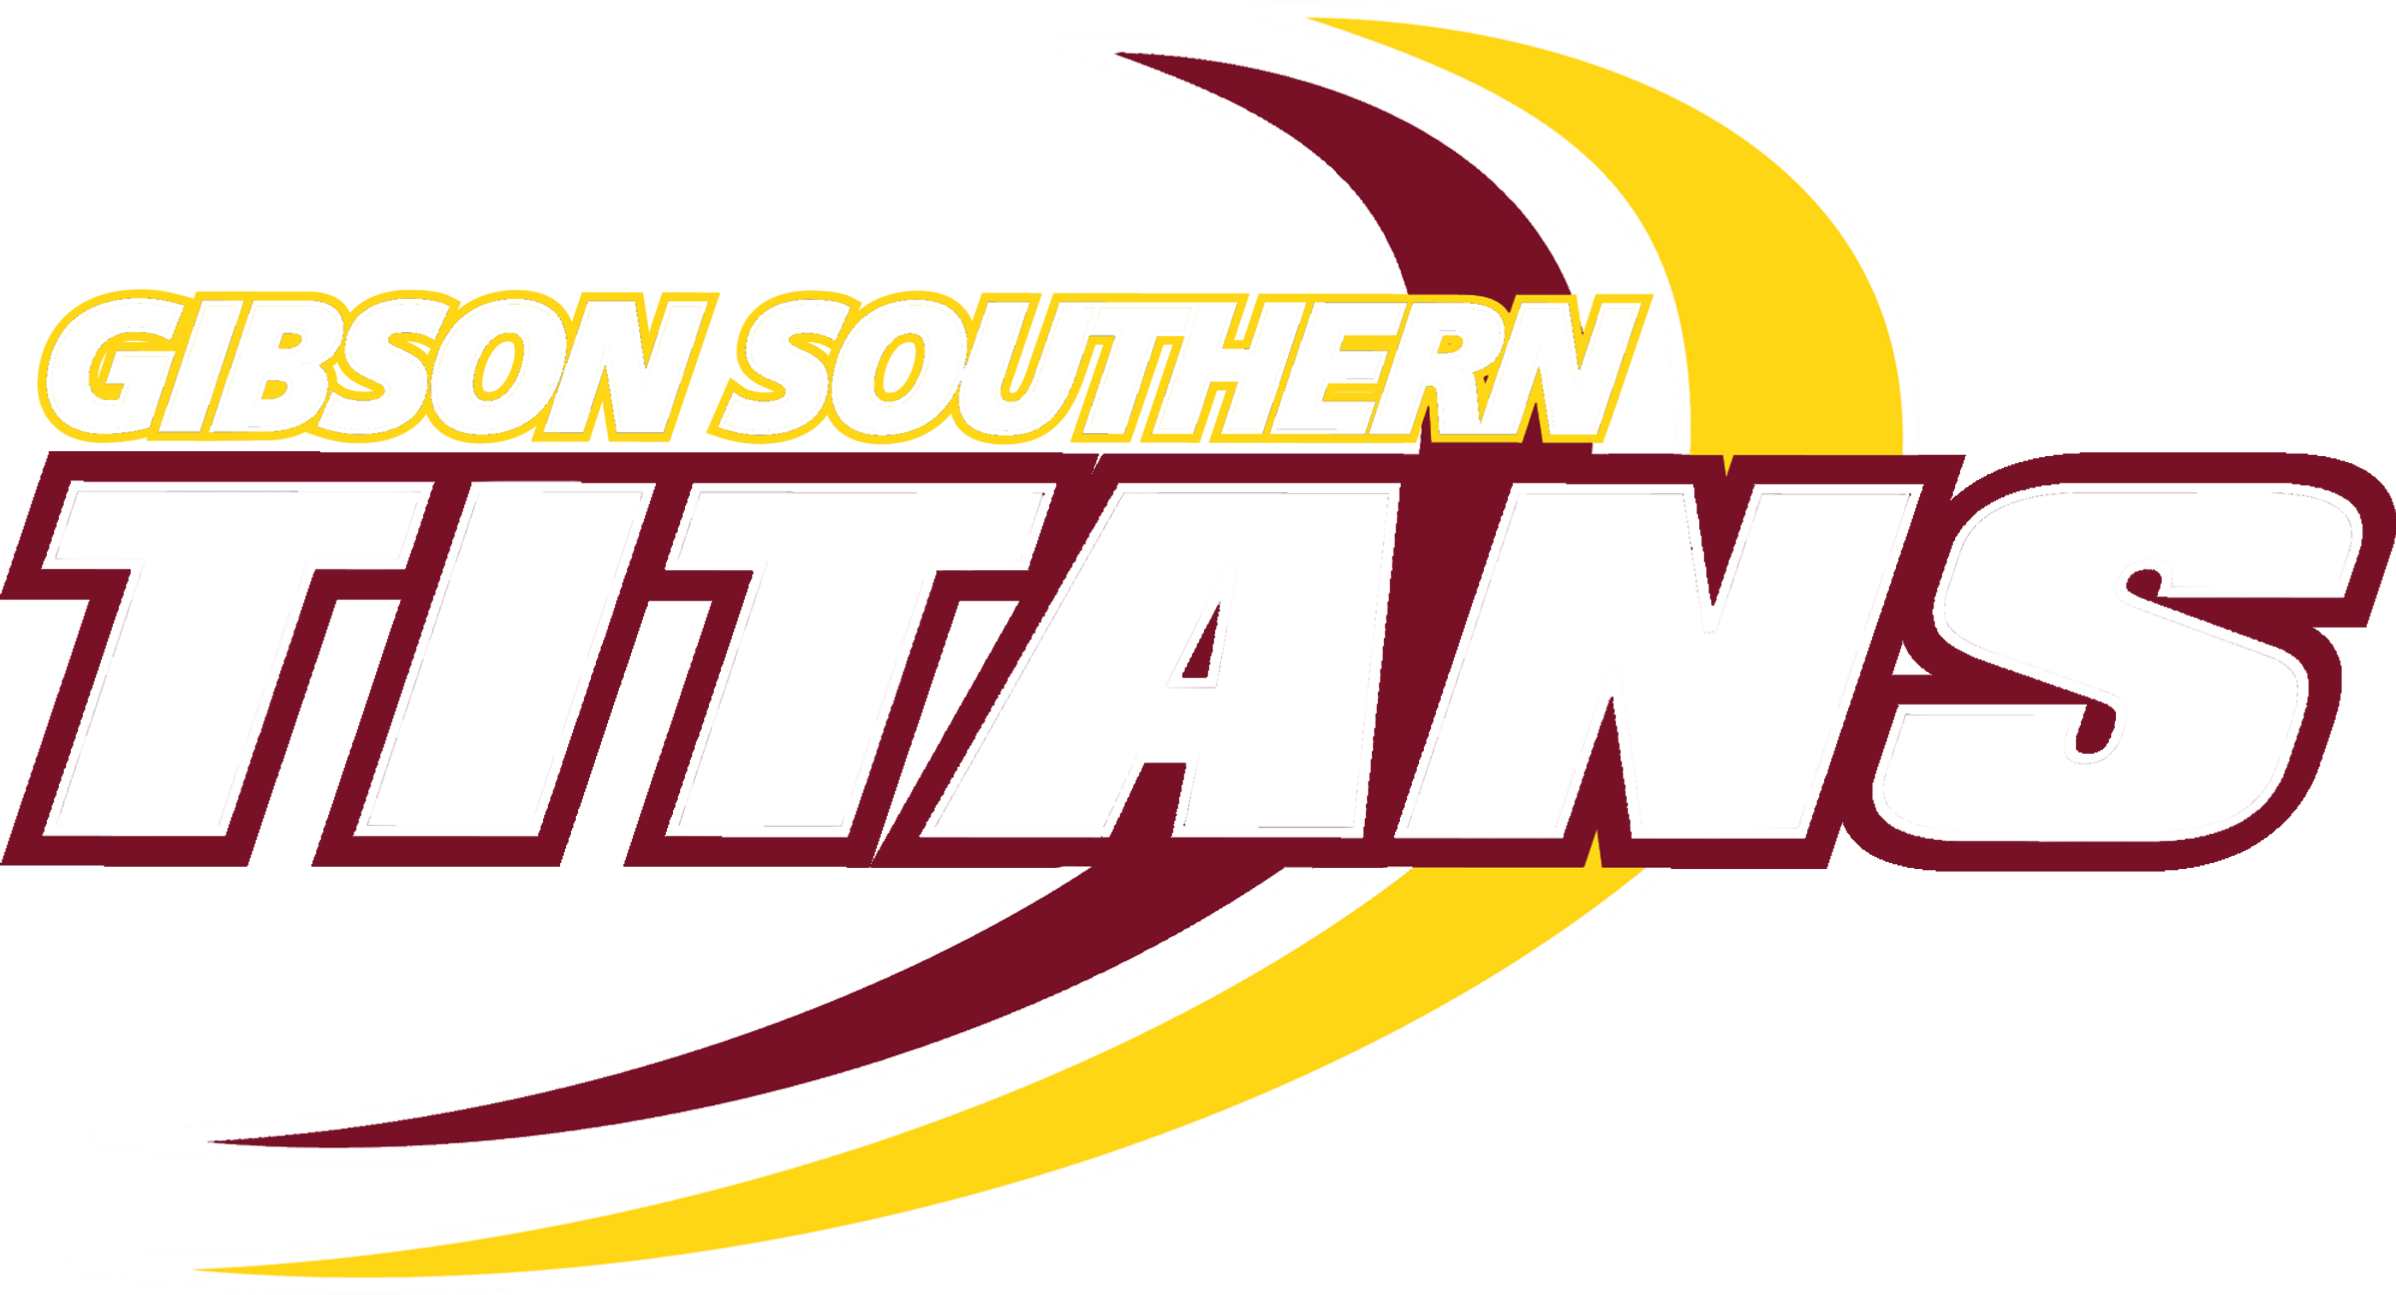 Gibson Southern Titans